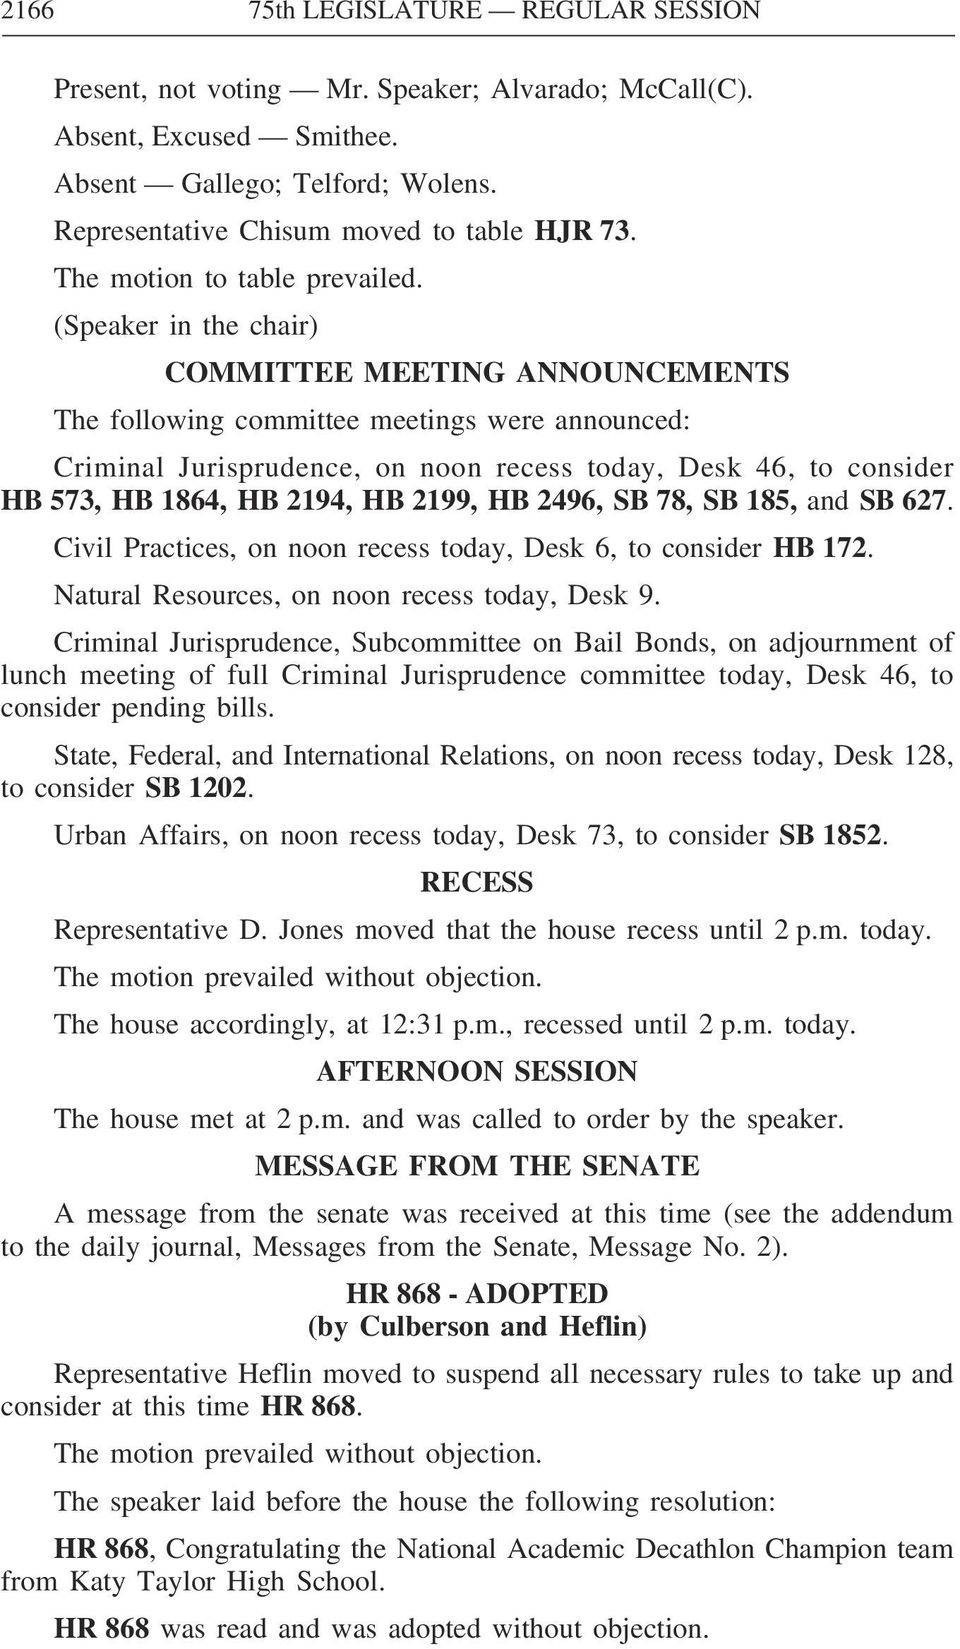 (Speaker in the chair) COMMITTEE MEETING ANNOUNCEMENTS The following committee meetings were announced: Criminal Jurisprudence, on noon recess today, Desk 46, to consider HB 573, HB 1864, HB 2194, HB